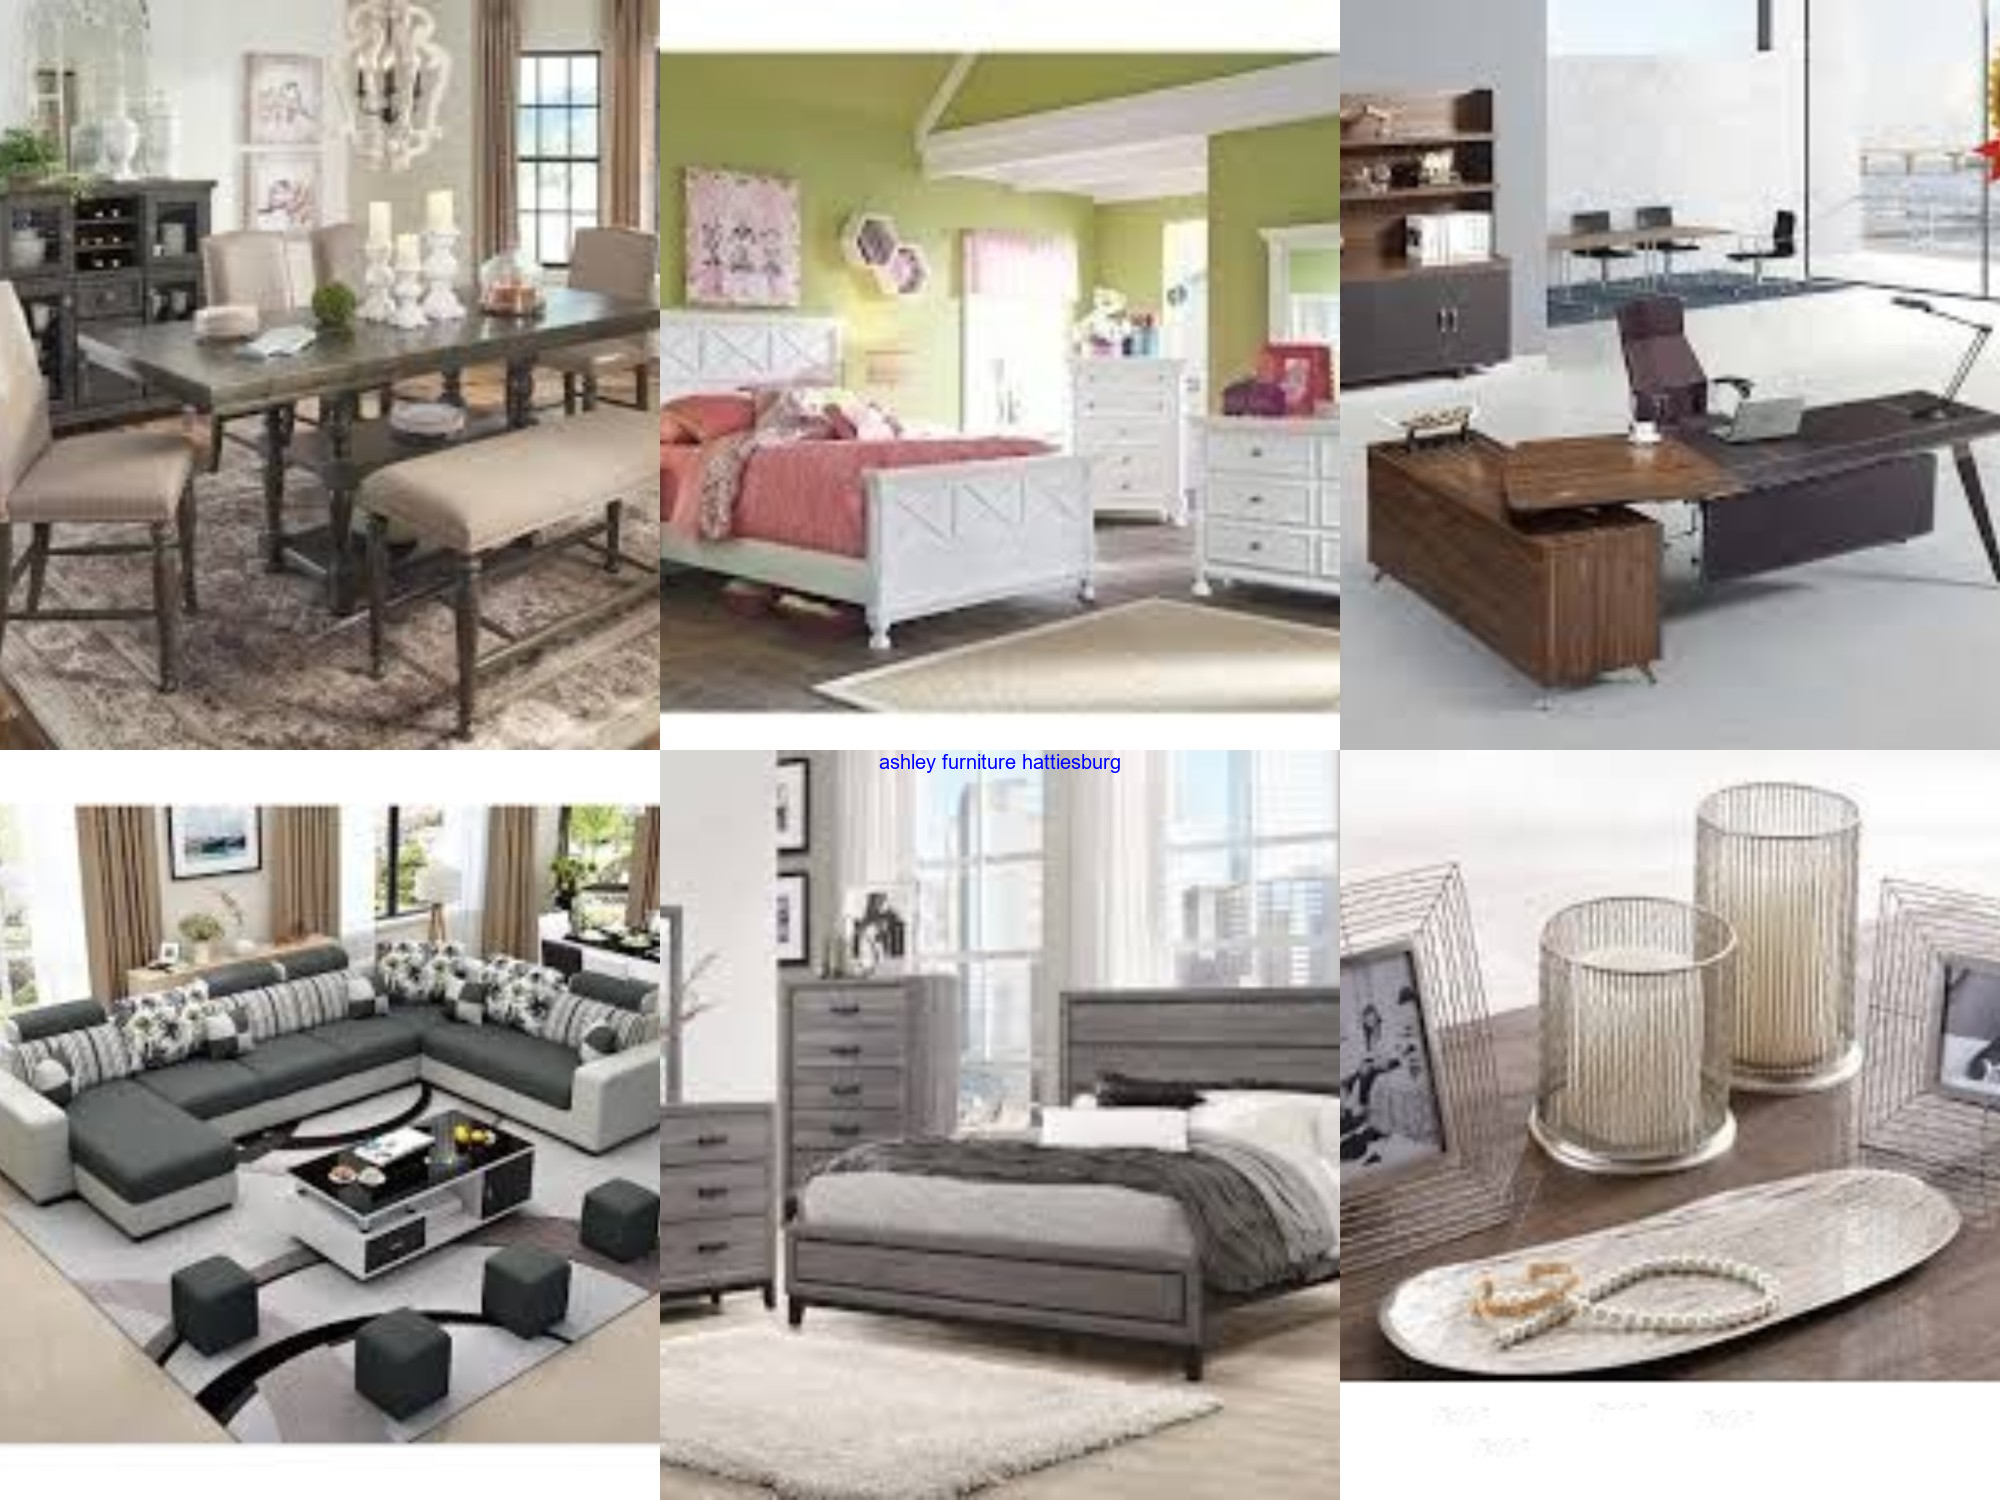 Ashley Furniture Hattiesburg I Recommend That You Try This Site